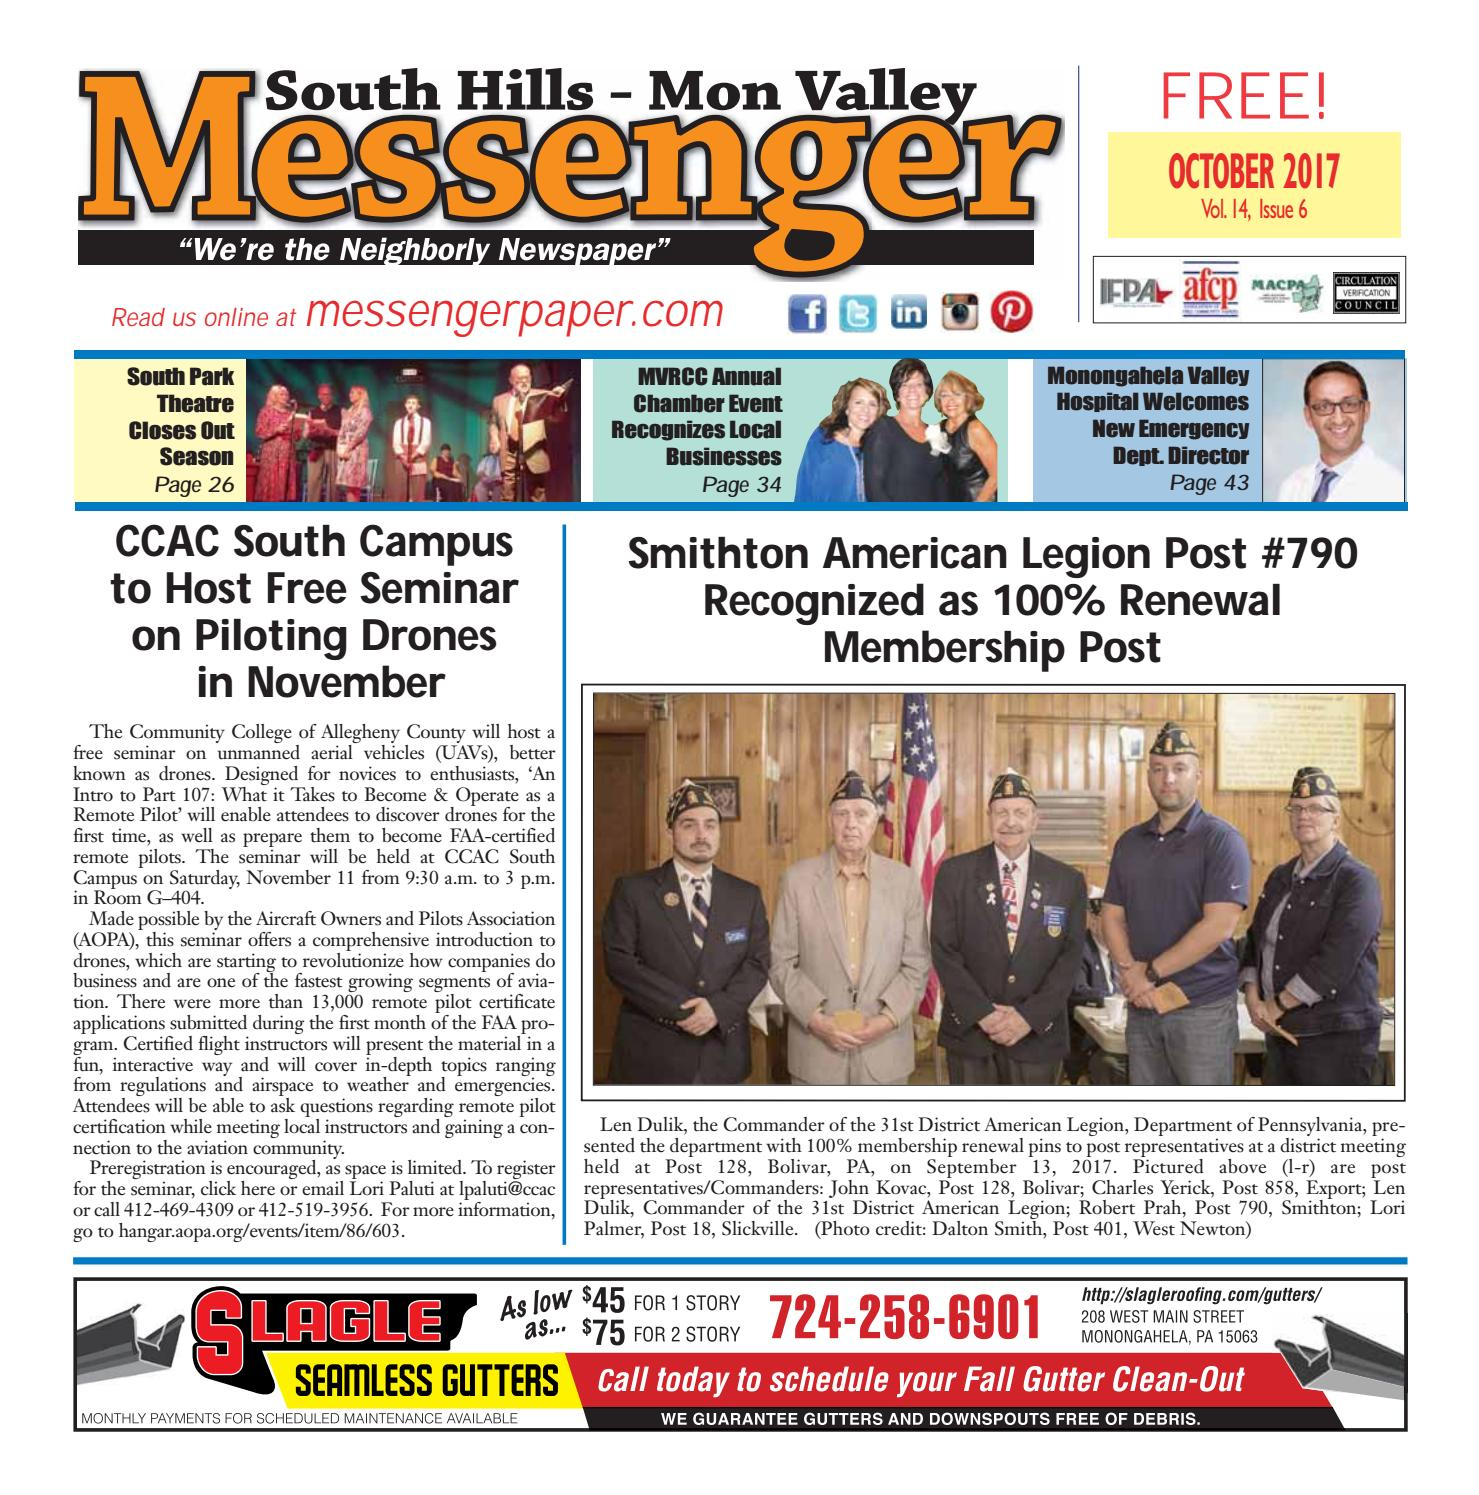 South hills mon valley messenger november 2014 by south hills mon south hills mon valley messenger october 2017 fandeluxe Choice Image